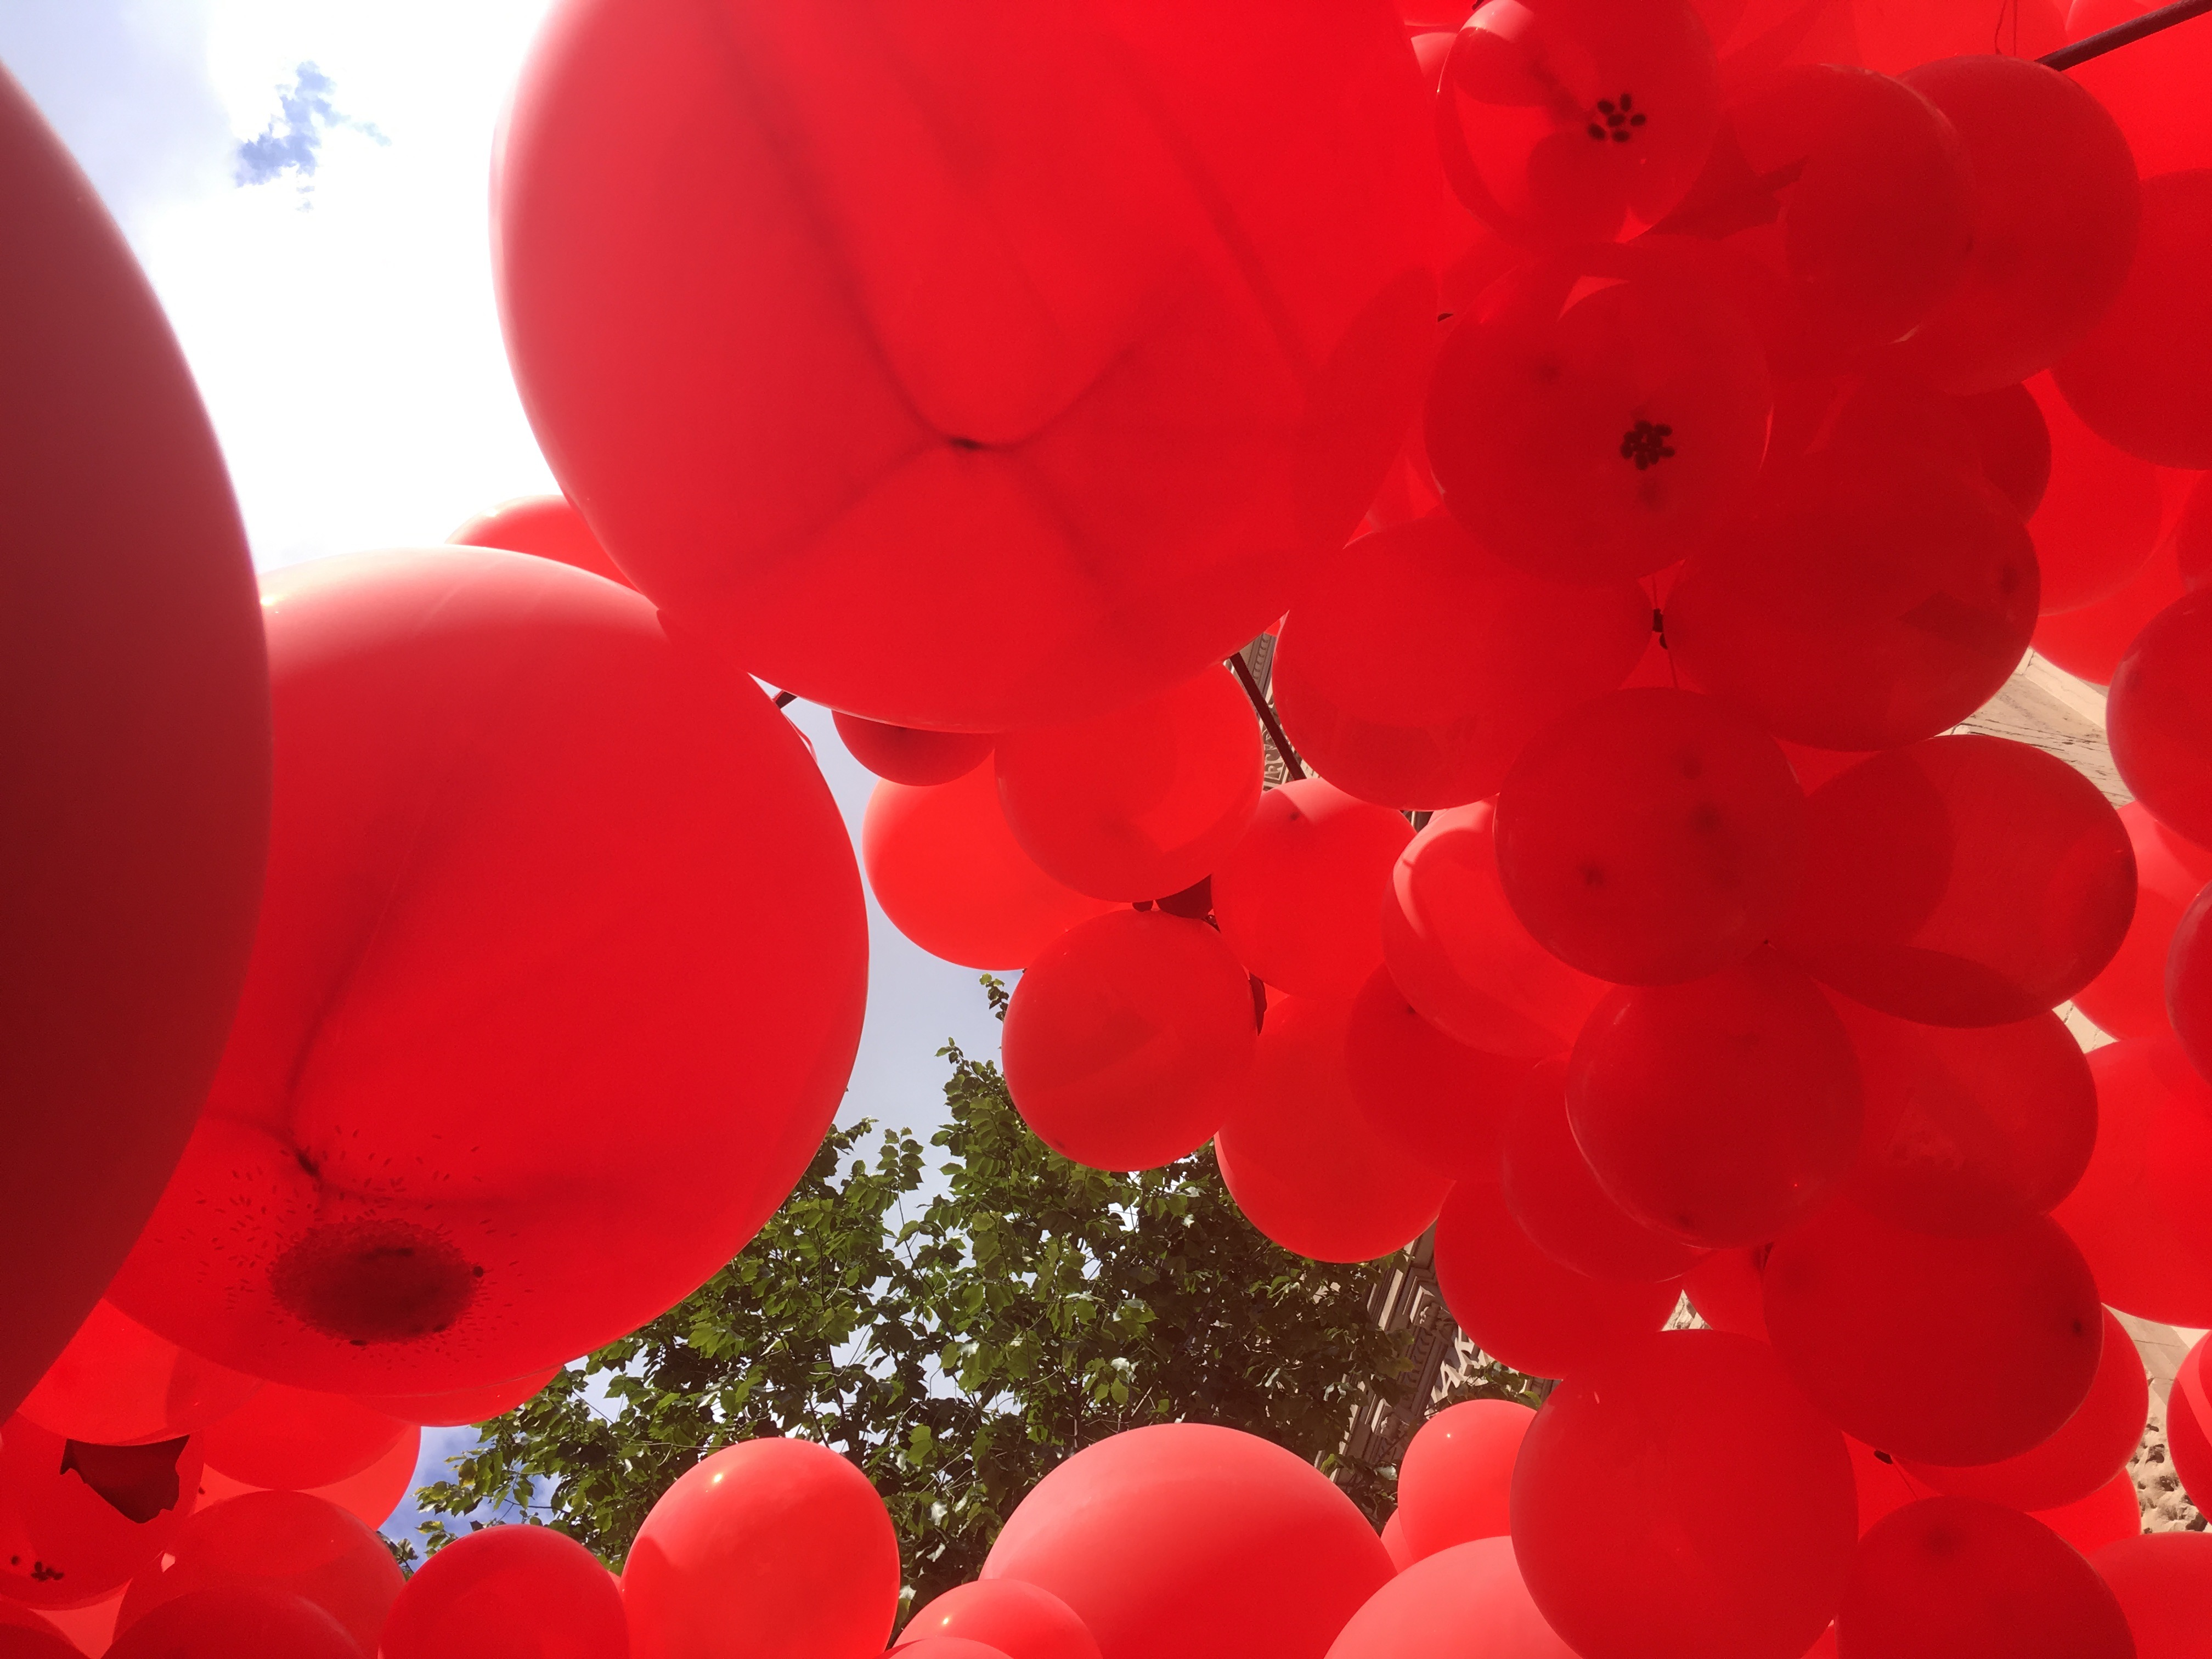 Looking up through at least 99 red balloons arranged by OLIN